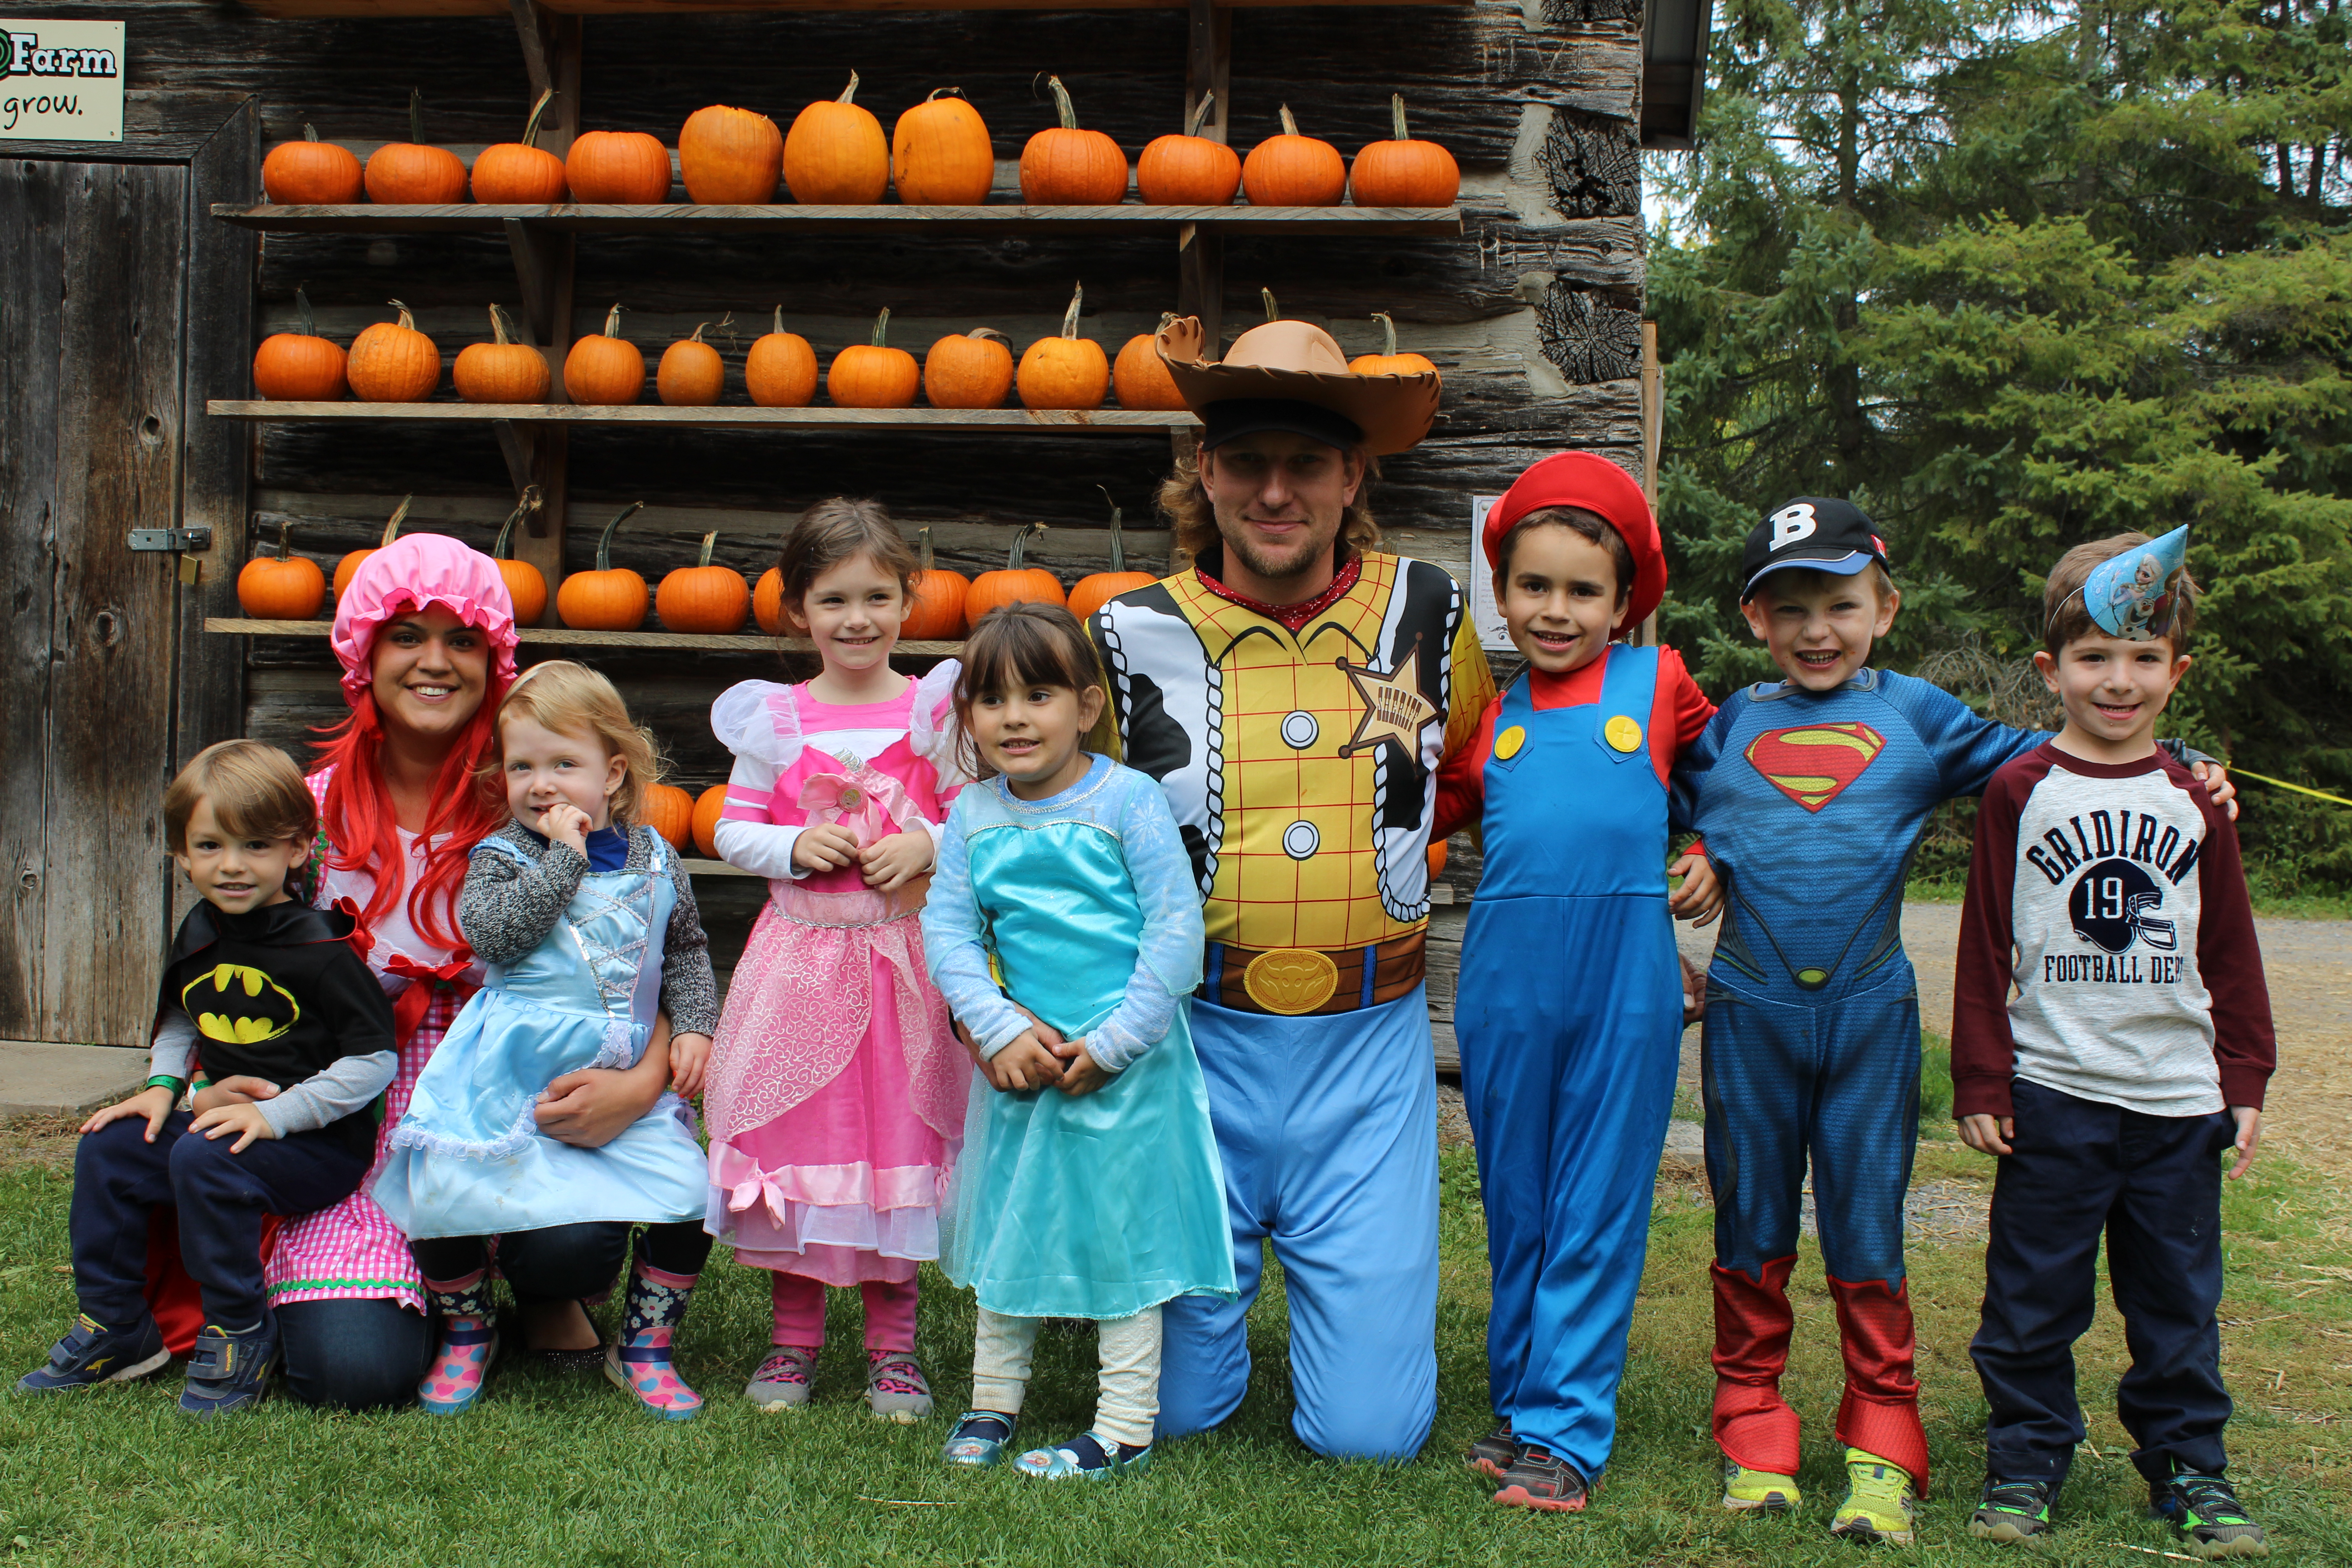 Saunders Farm Is An Amazing Destination For Your Childs Birthday Parties We Offer Over 40 Daytime Activities Including The Haunted Hayride